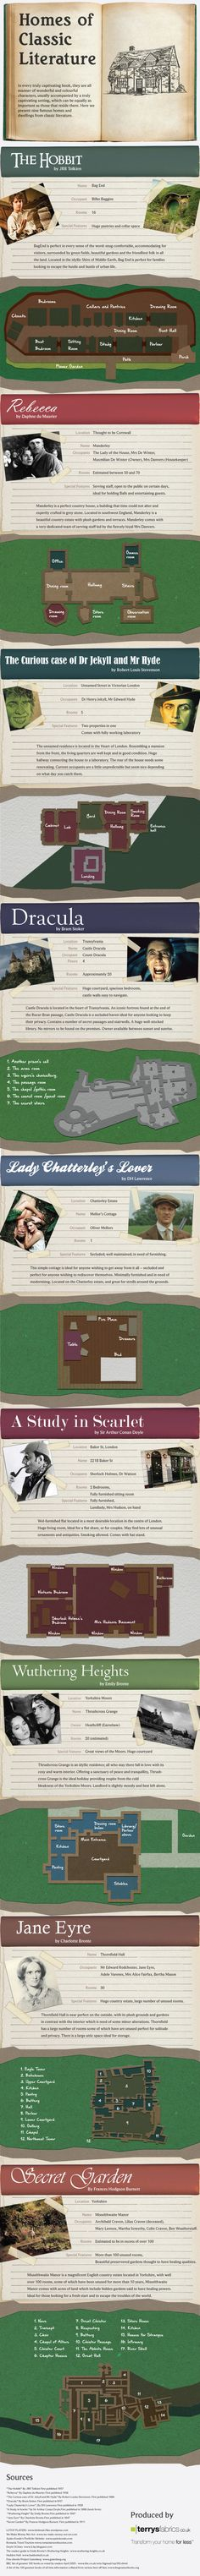 9 layouts of classic lit homes